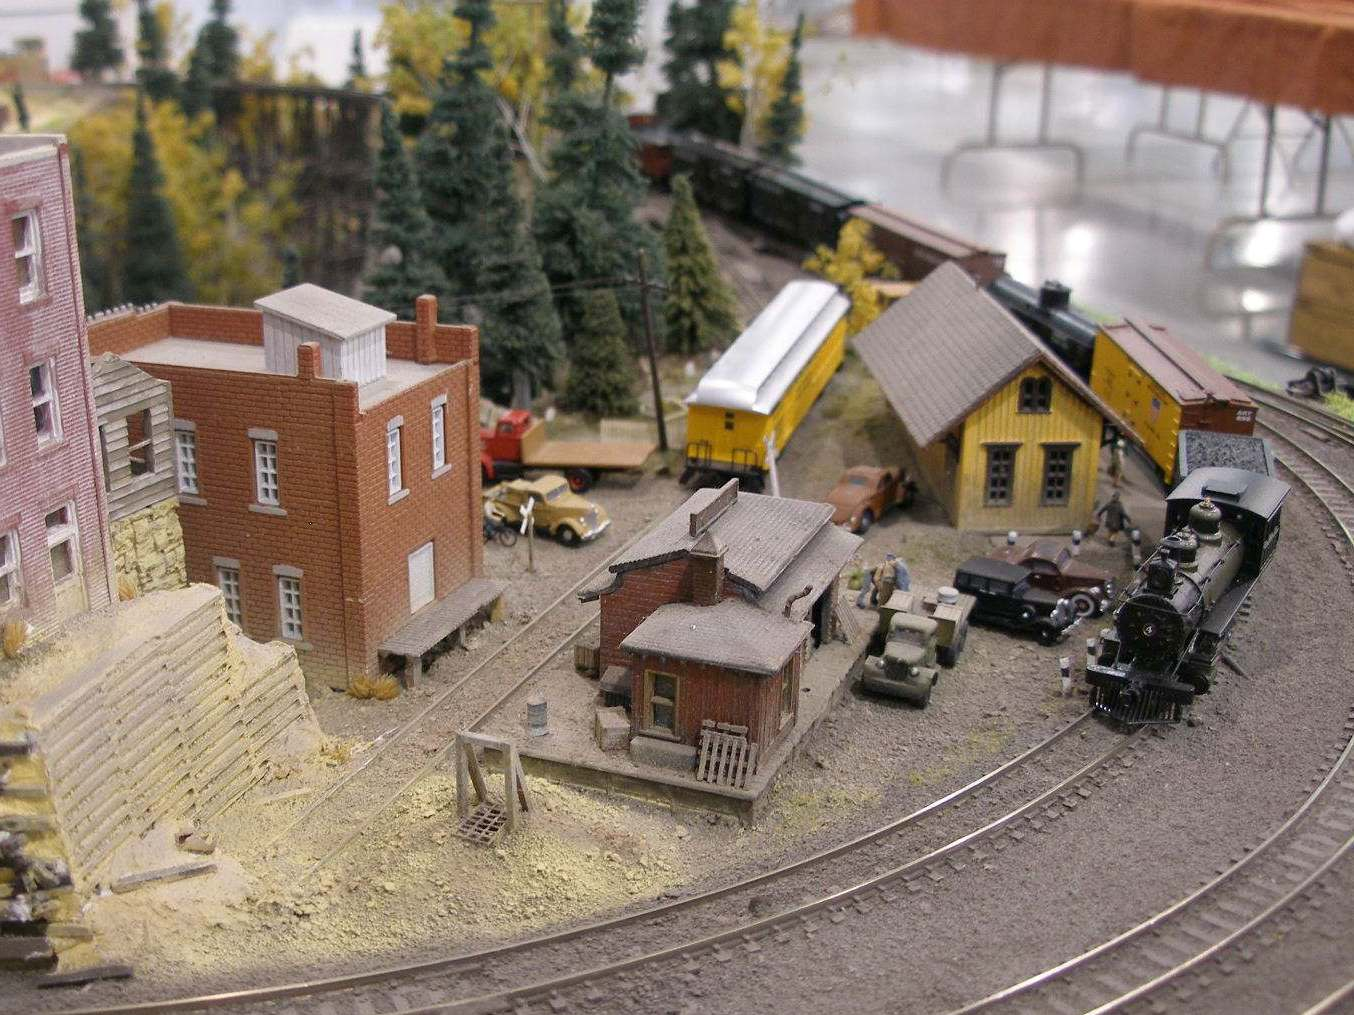 Mini-Things N Scale Engine House Plans on ho scale modern house, n scale micro layouts, n scale bridge, n scale machine shop, n scale building, n scale paper models, n scale observation tower, n scale factory, n scale warehouse, n scale turntable, n scale mill, n scale model houses, n scale steam engines, n scale barn, n scale ice house, n scale water tower, n scale school house, n scale depot, n scale tunnel portal, n scale lighthouse,